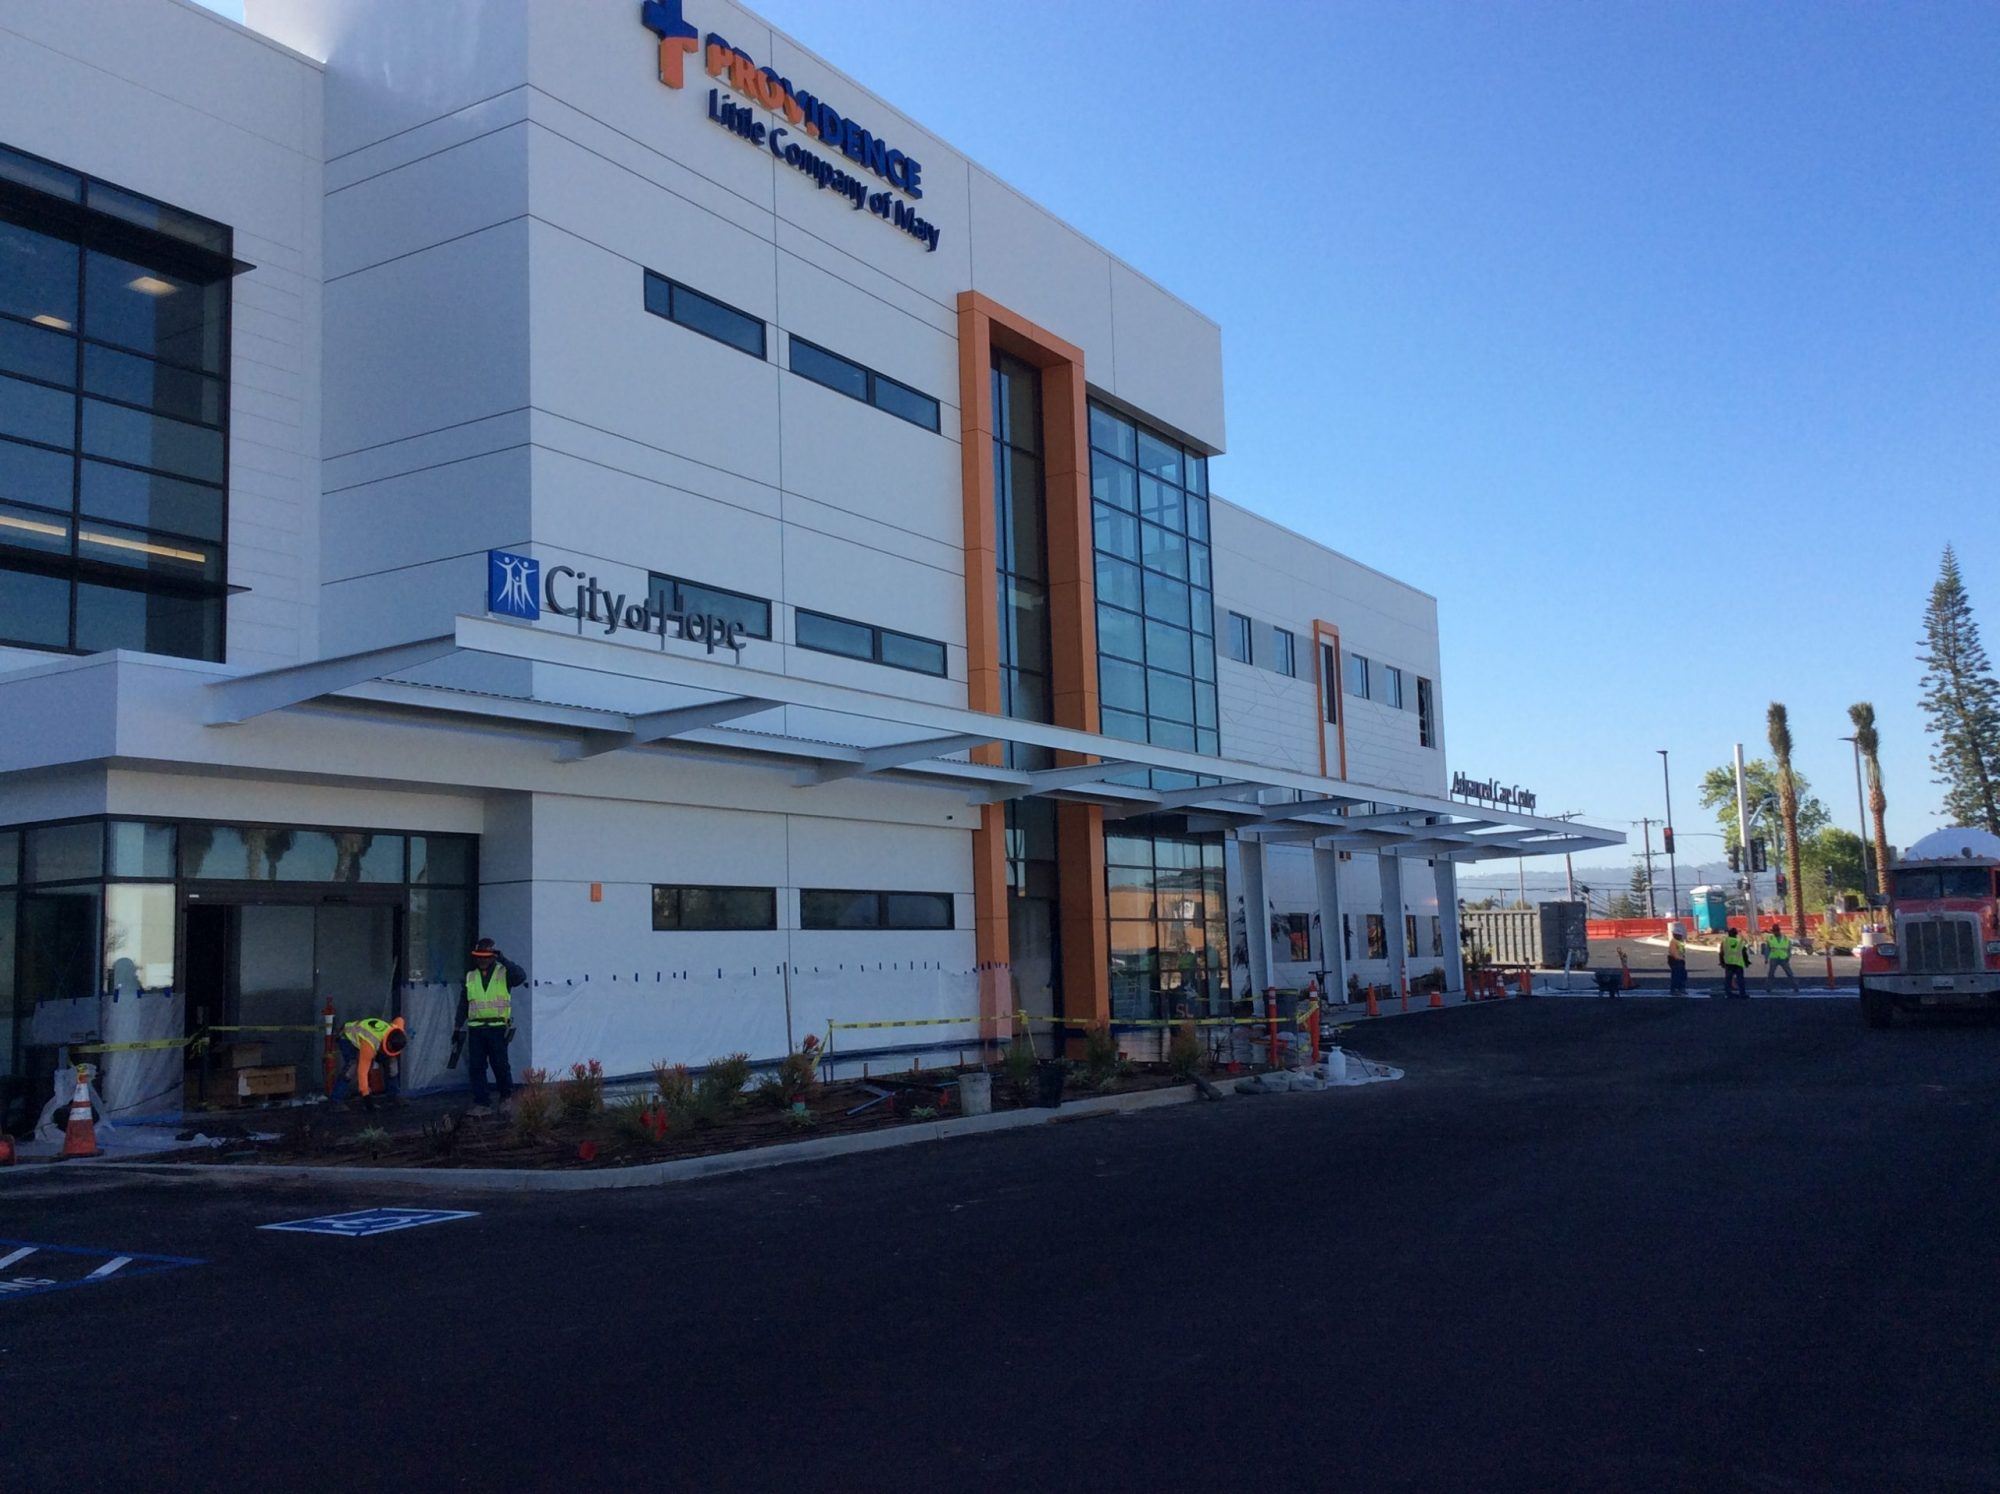 South Bay Secures Much Needed Oncology Services With New Providence Advanced Care Center